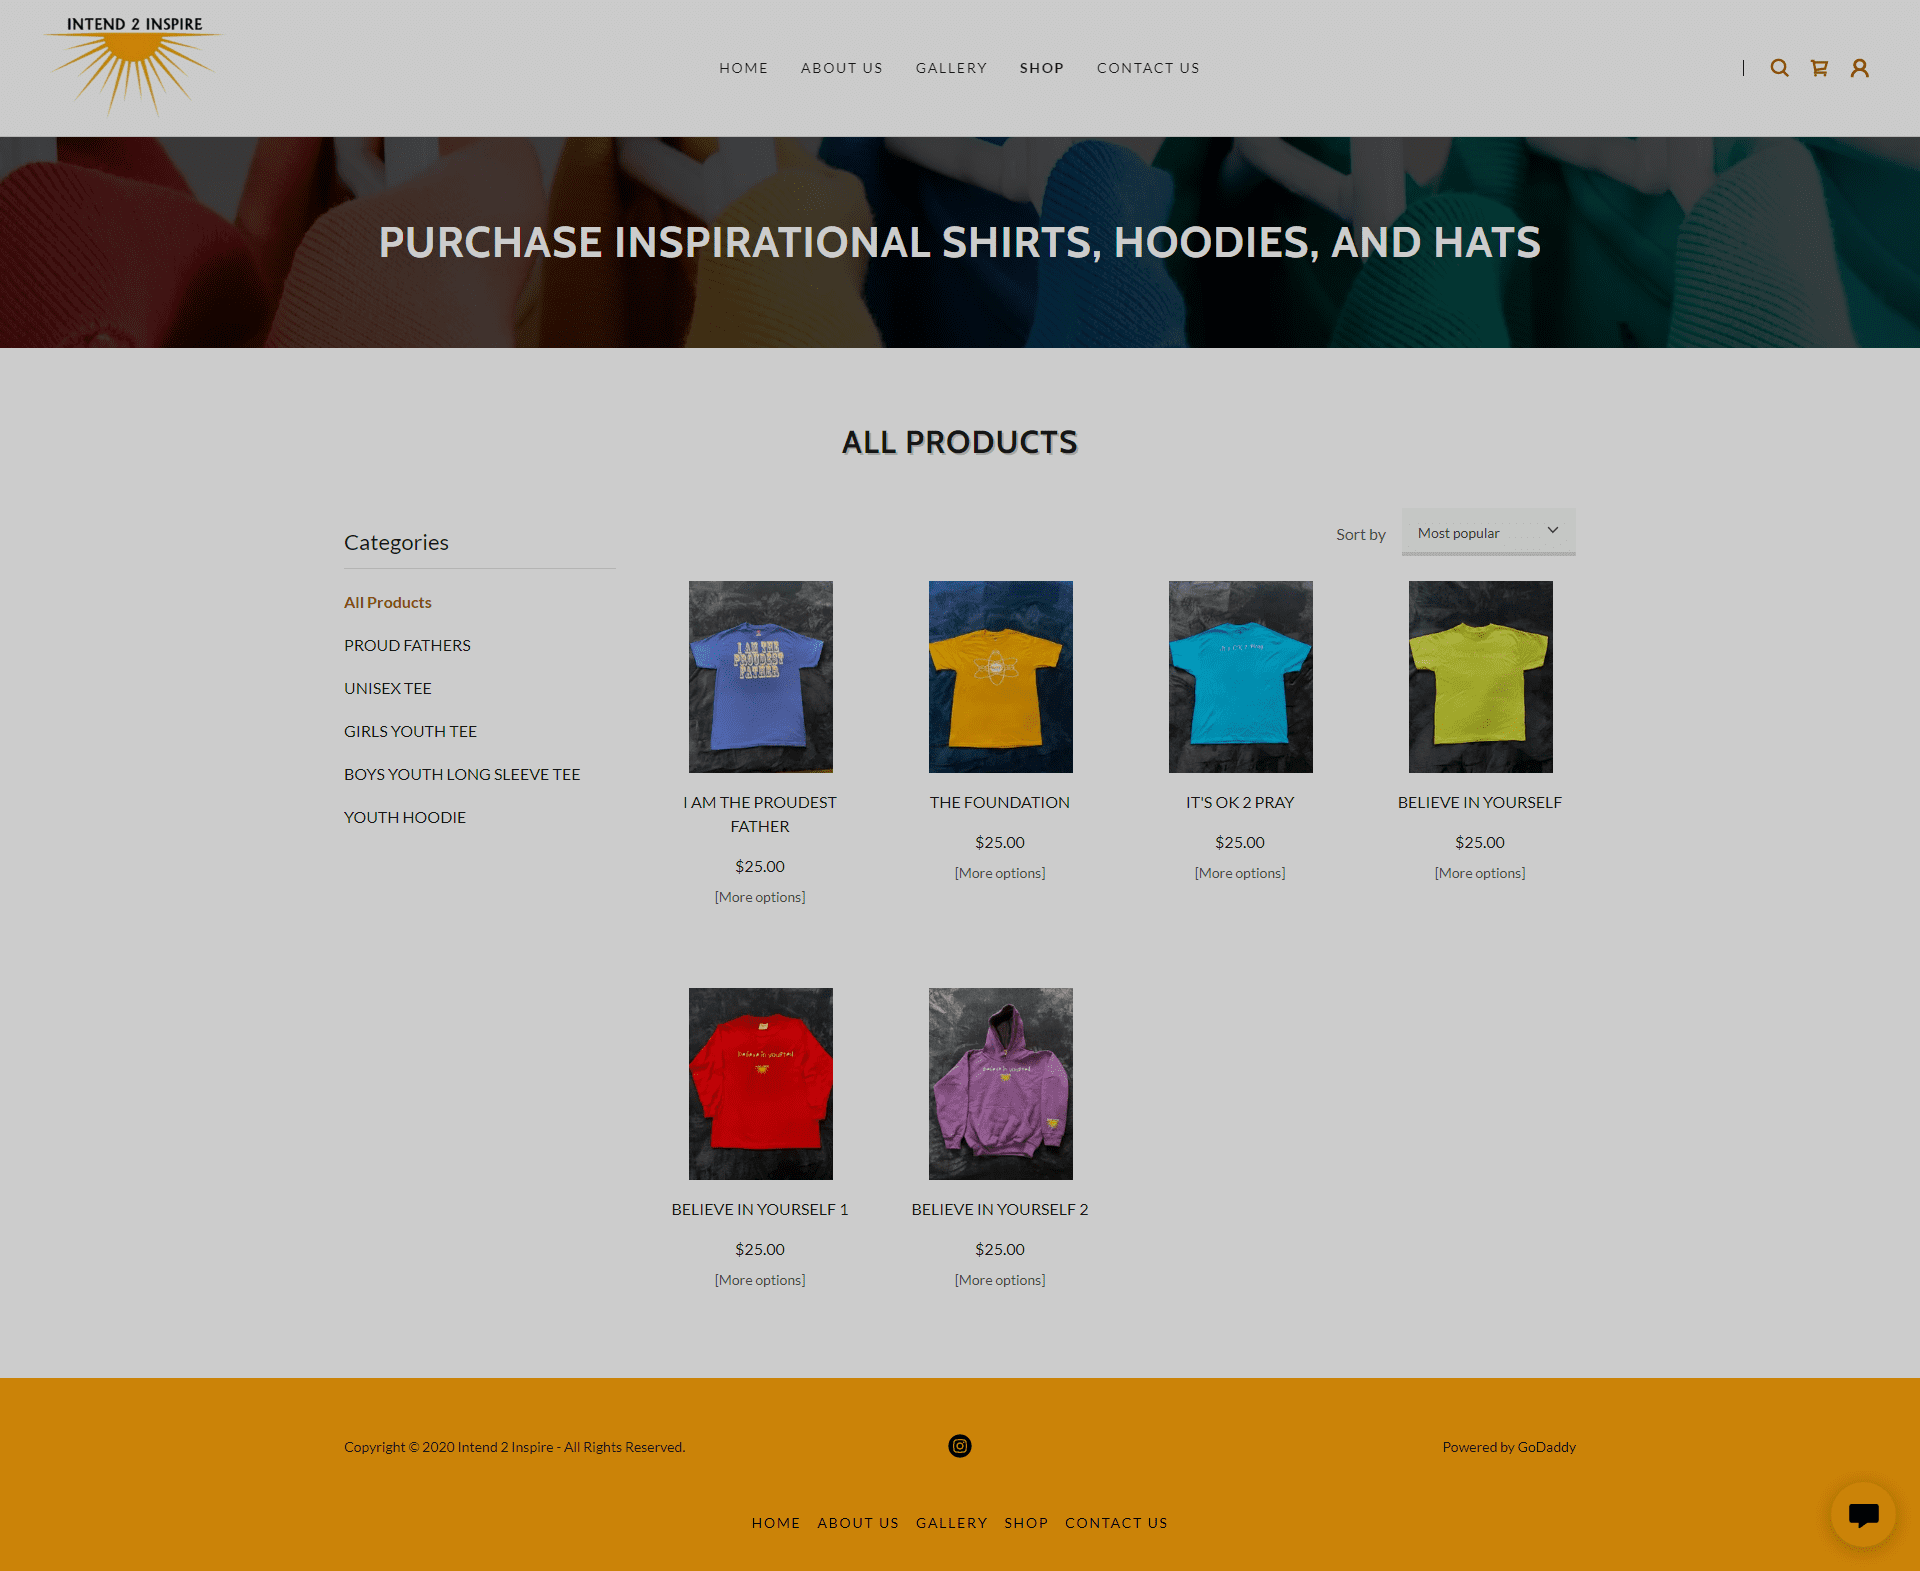 Intend 2 Inspire Shop Page